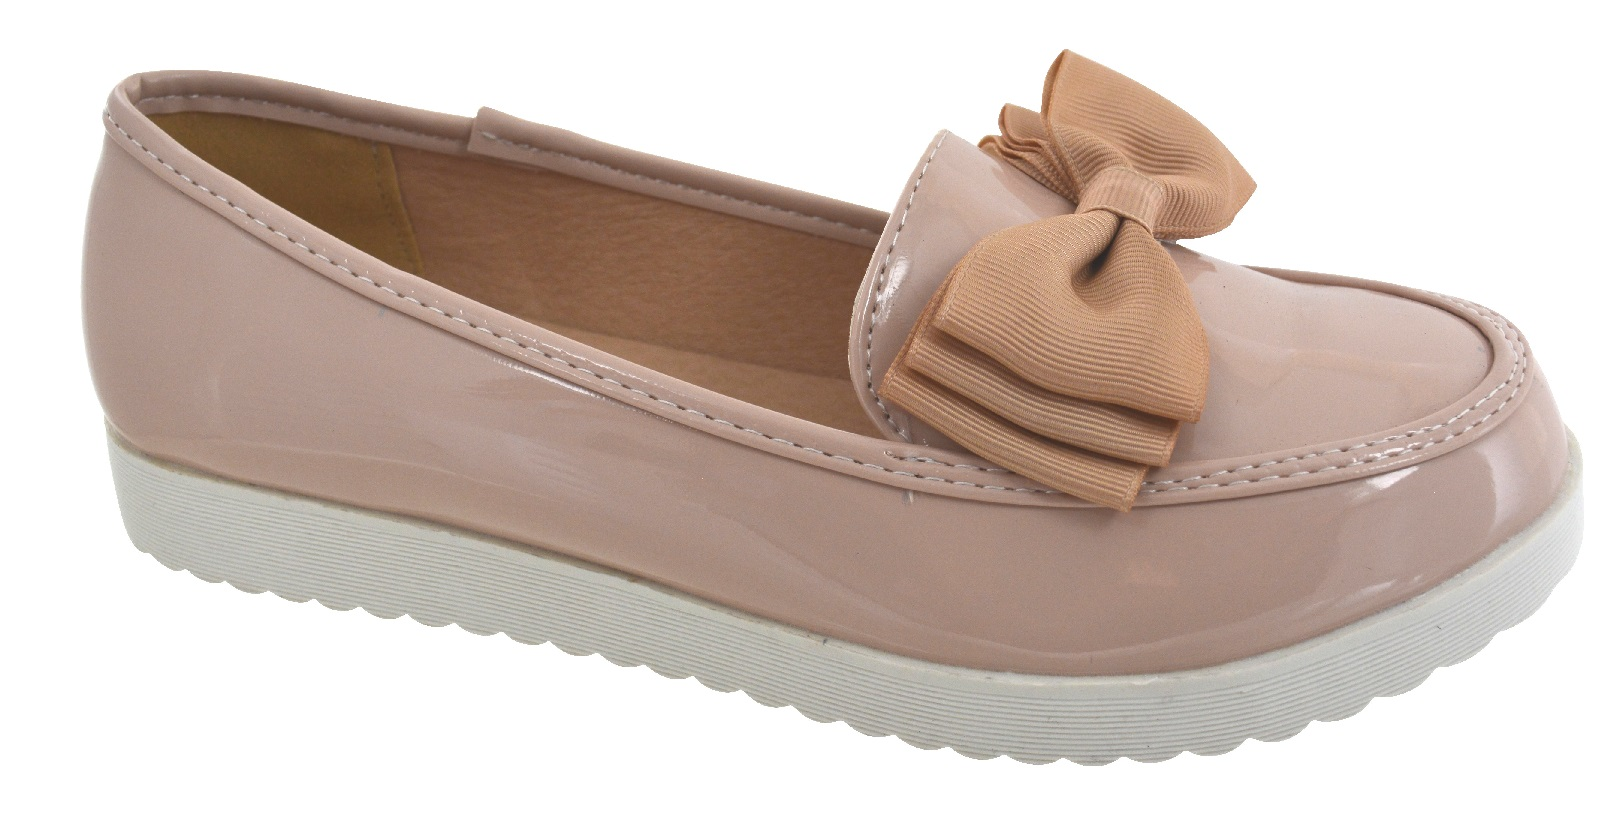 WOMENS-LADIES-FLAT-CREEPER-CHUNKY-SOLE-SCHOOL-WORK-DOLLY-LOAFERS-BOW-SHOES-SIZE